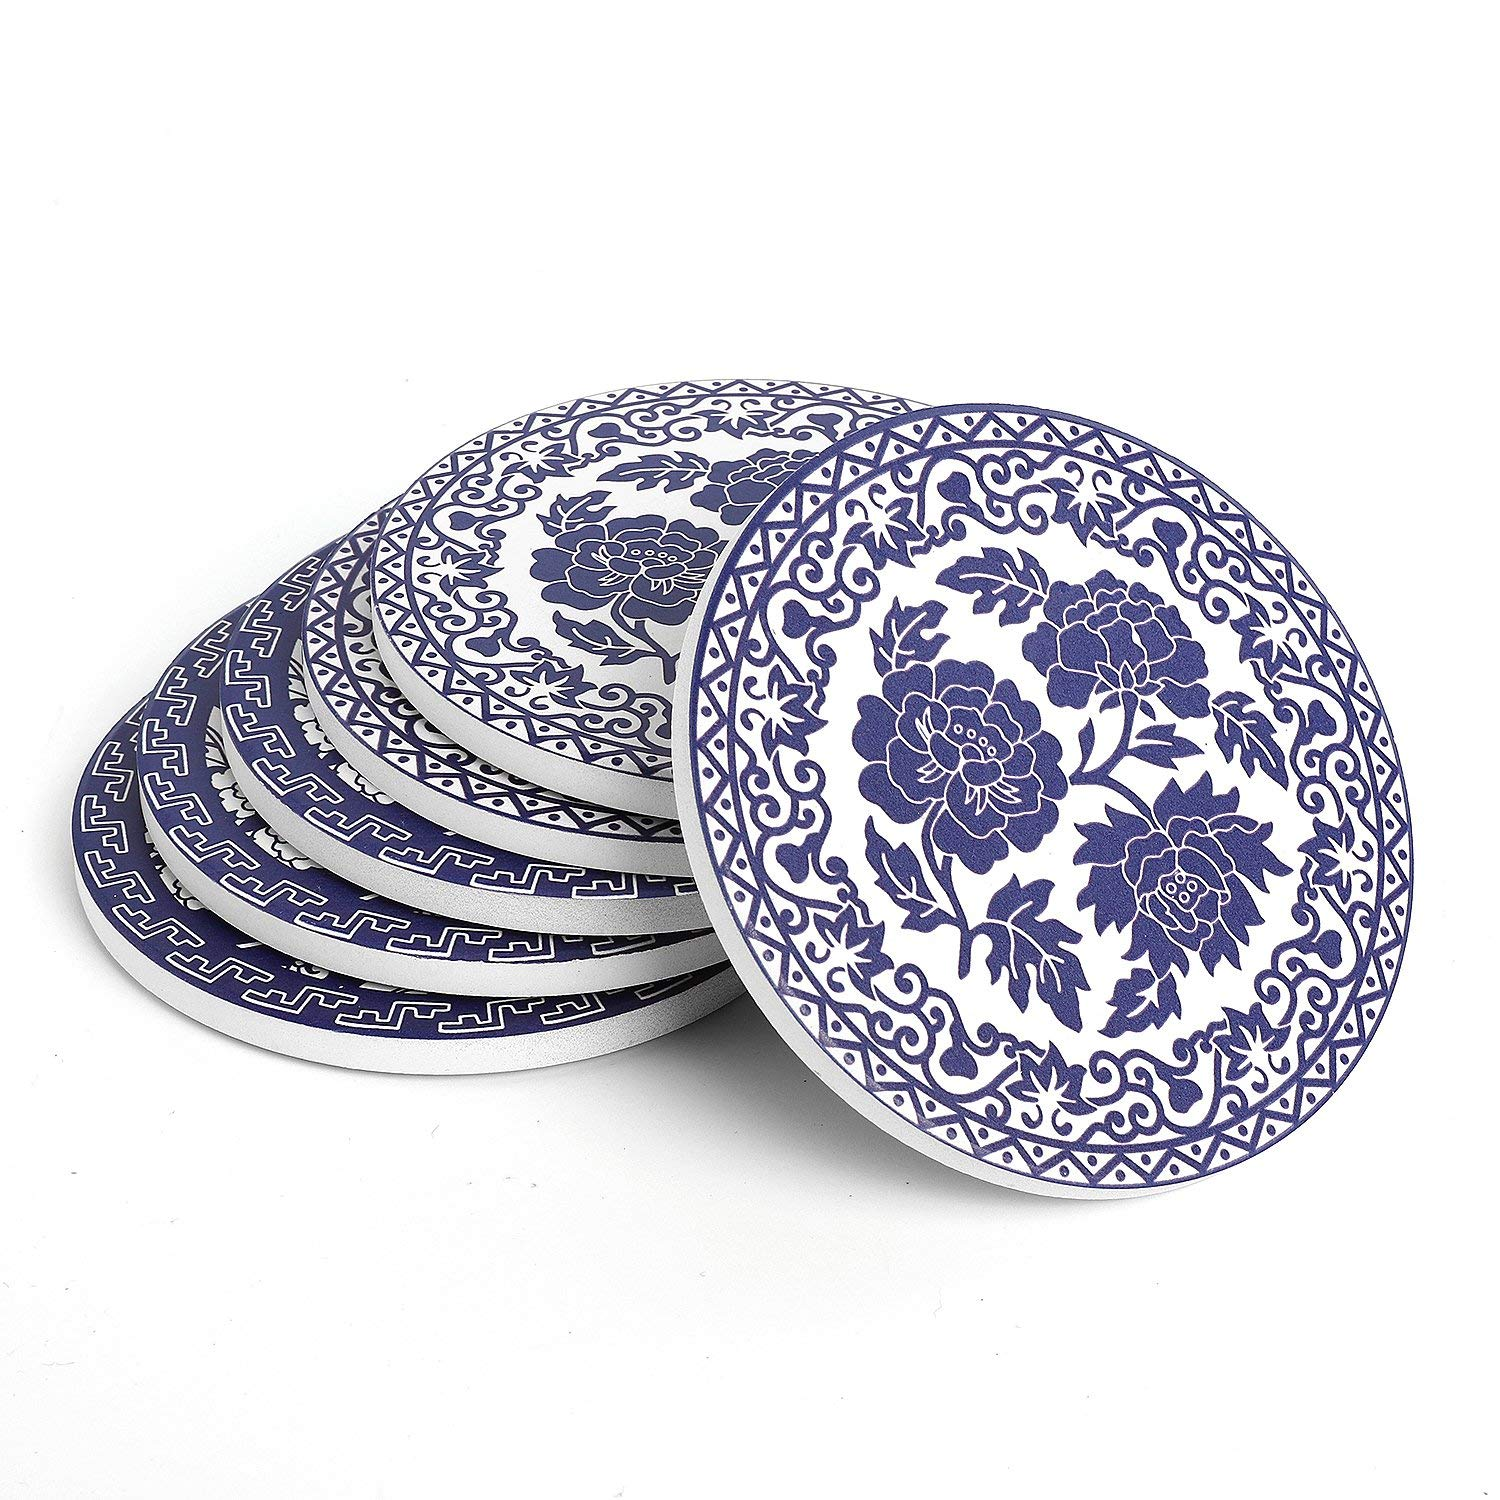 Teocera Drink Coasters - Blue and White China Absorbing Stone Coasters with Cork Base, Prevent Furniture from Dirty and Scratched, Stone Coasters set Suitable for Kinds of Mugs and Cups, Set of 6